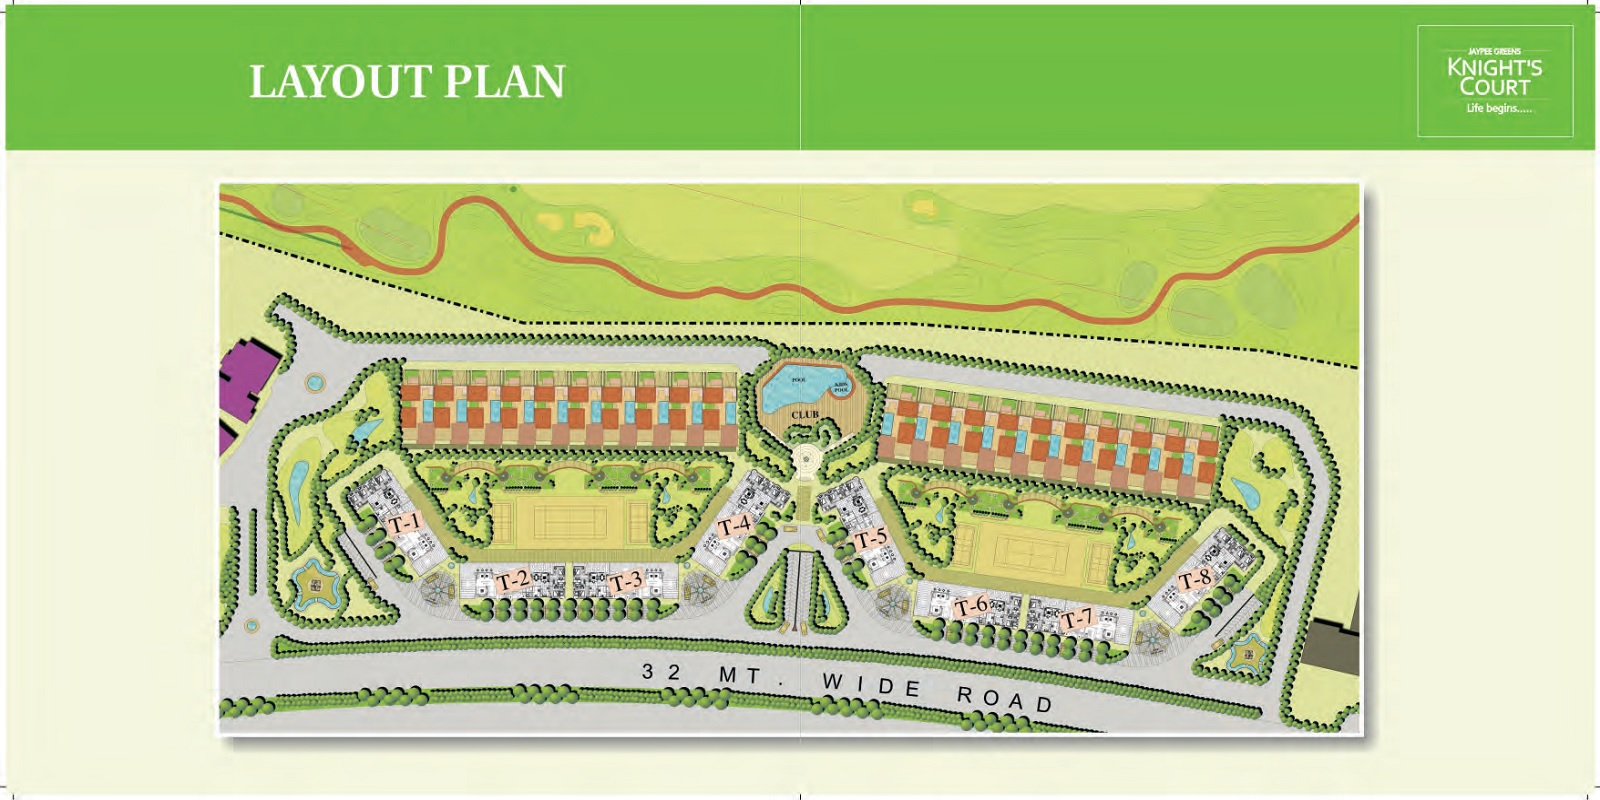 jaypee greens knight court master plan image7